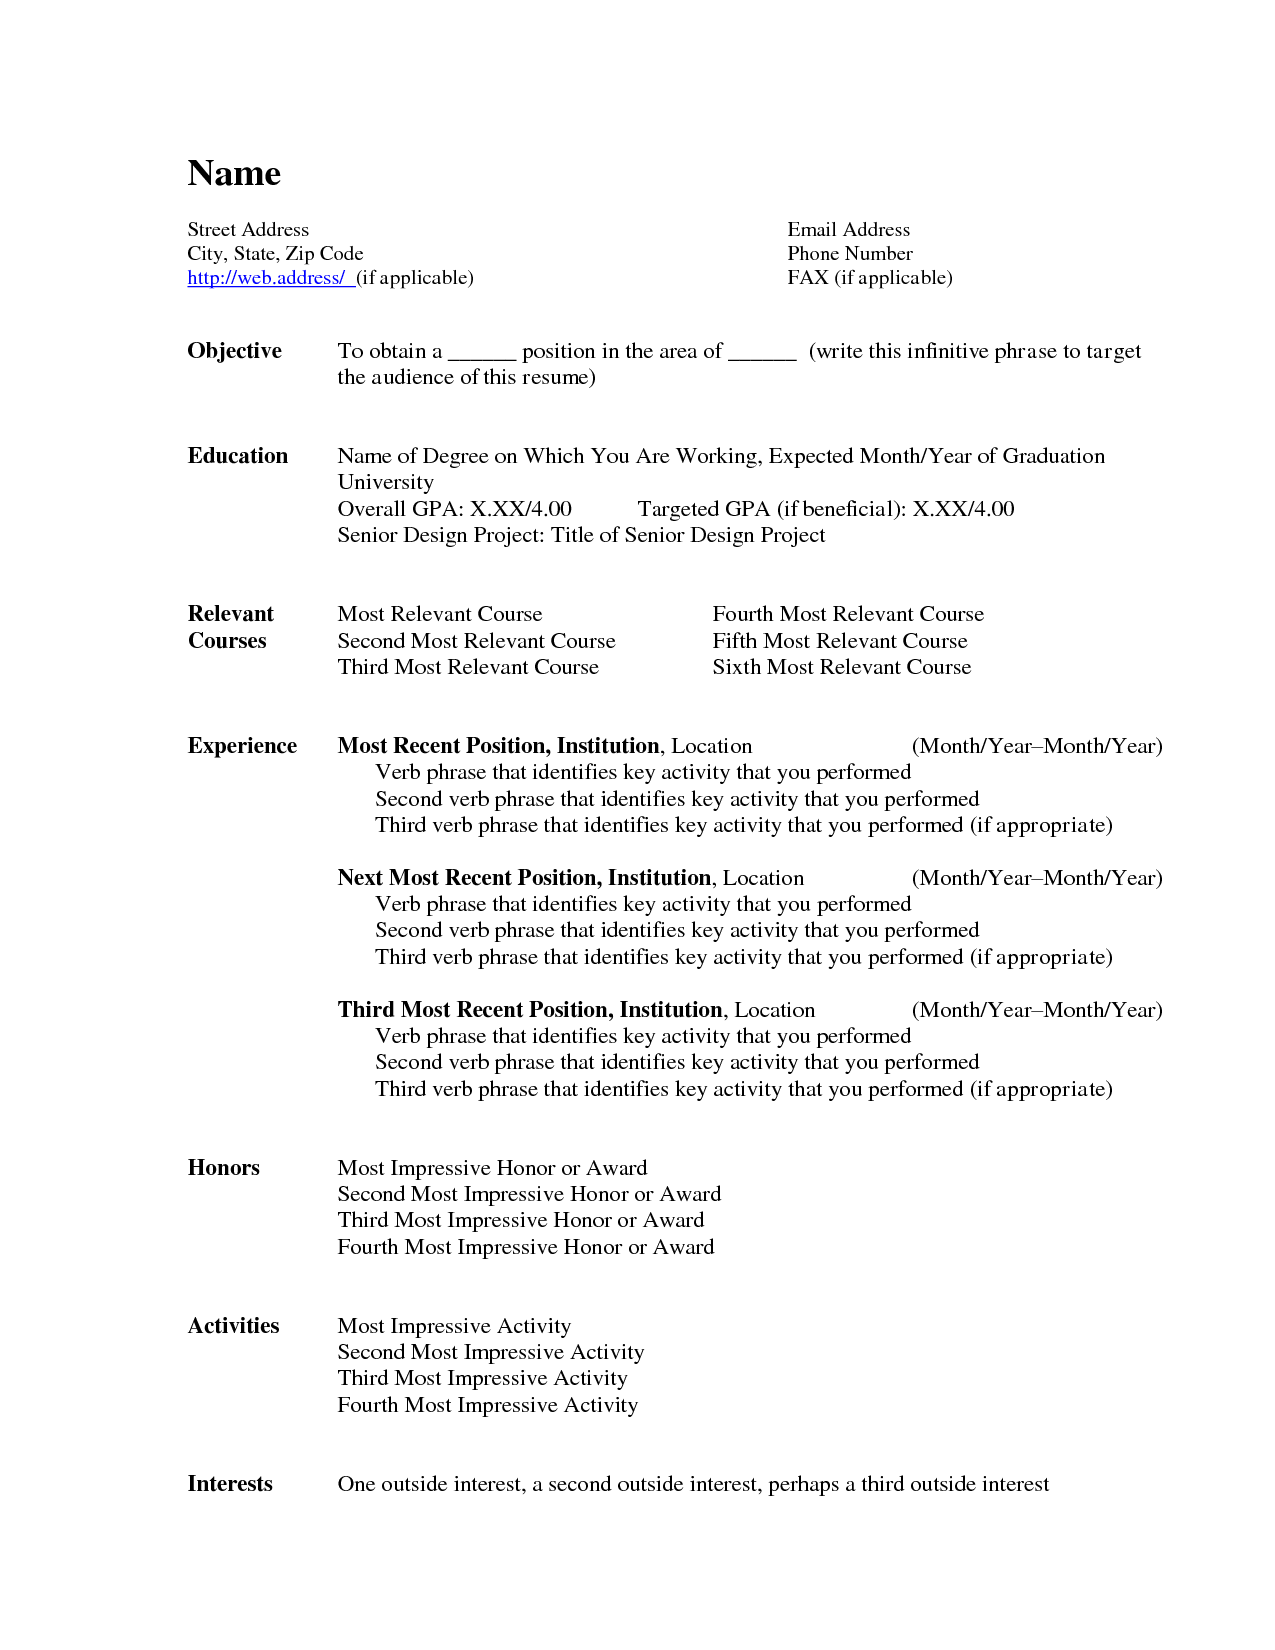 Resume Templates Microsoft   Images  Free Resume Templates